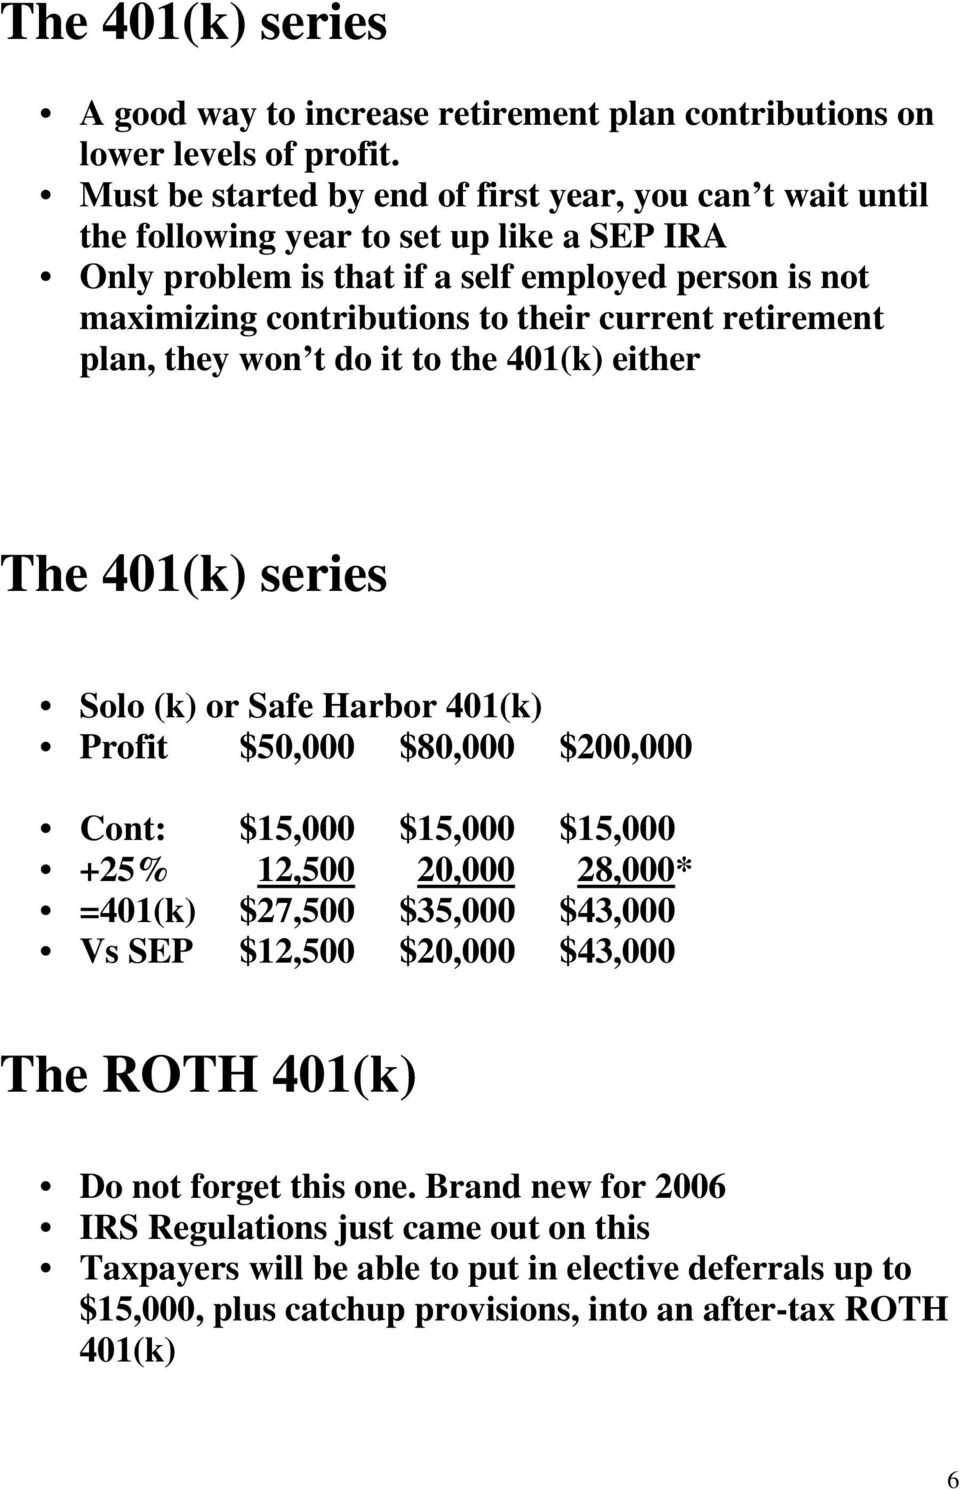 current retirement plan, they won t do it to the 401(k) either The 401(k) series Solo (k) or Safe Harbor 401(k) Profit $50,000 $80,000 $200,000 Cont: $15,000 $15,000 $15,000 +25% 12,500 20,000